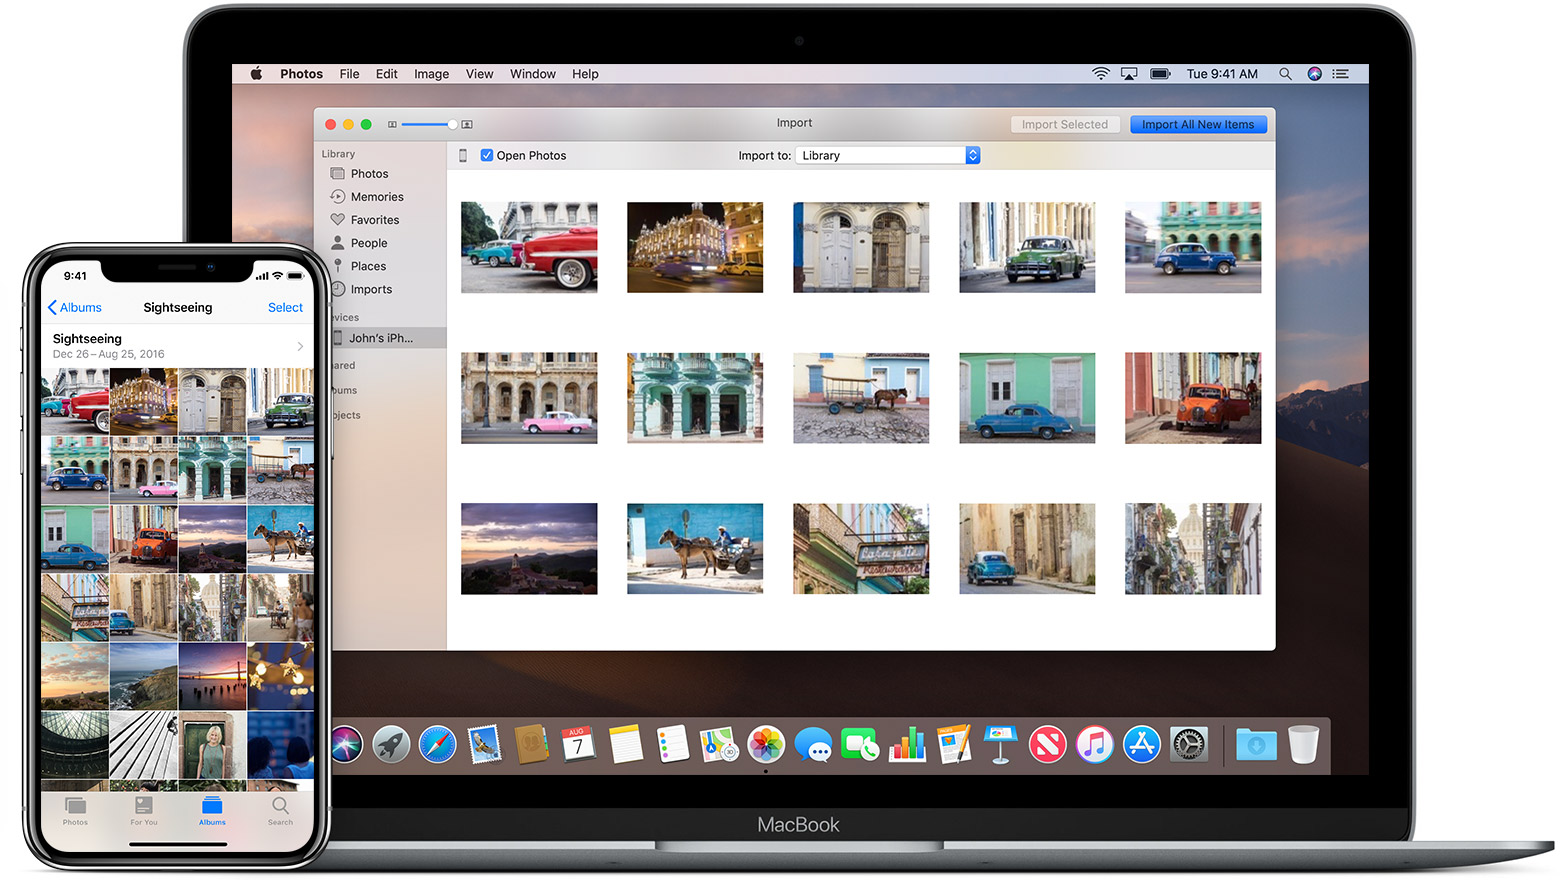 Transfer photos and videos from your iPhone, iPad, or iPod touch